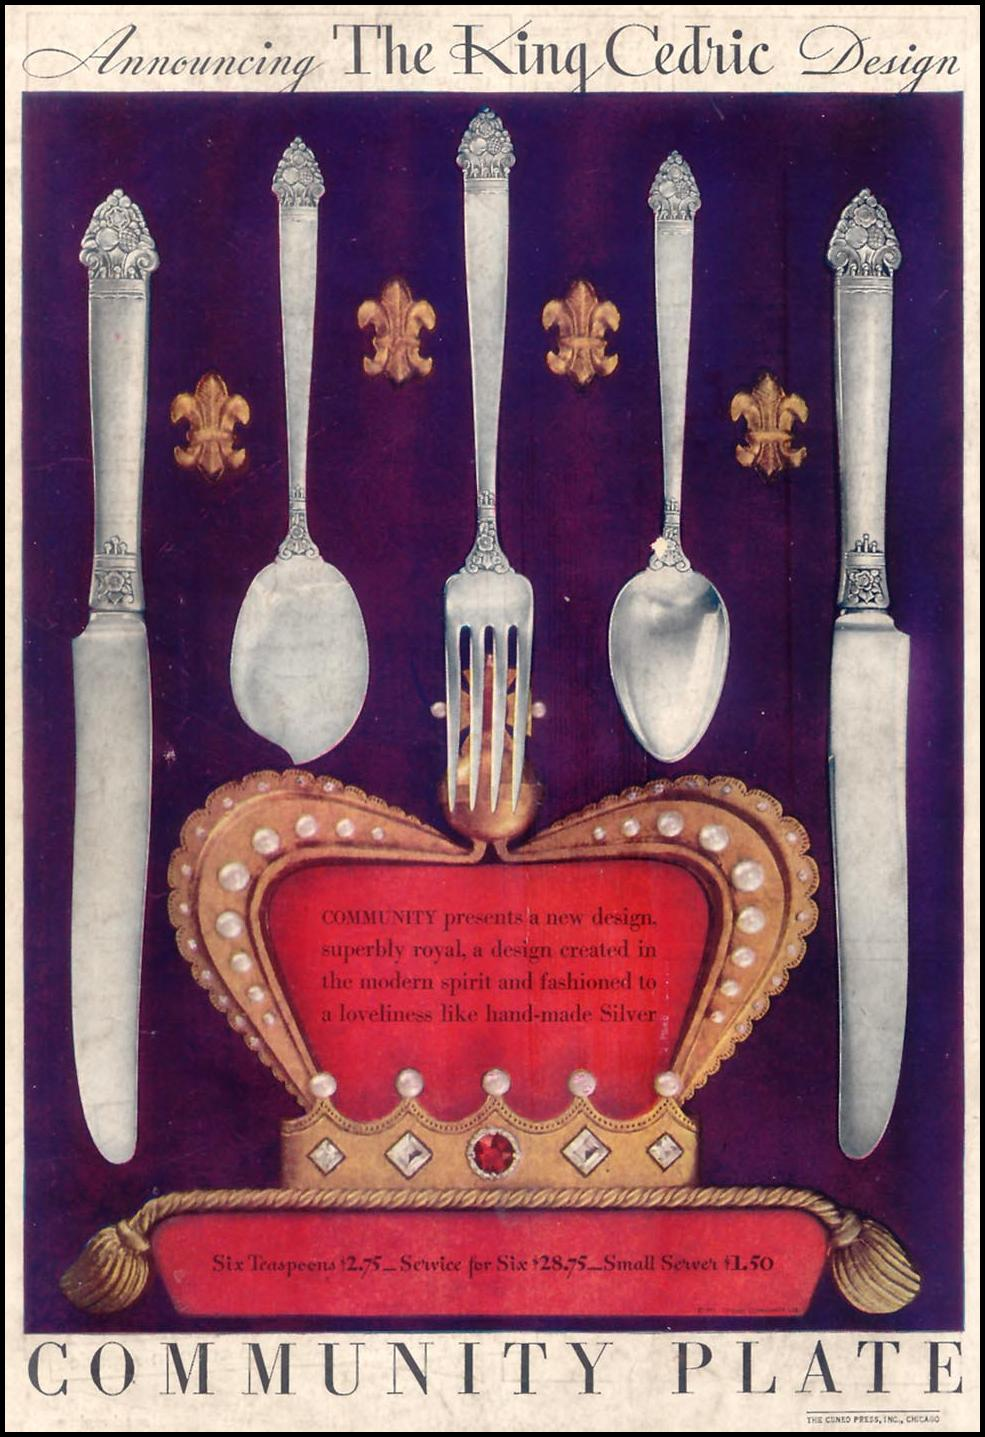 COMMUNITY PLATE GOOD HOUSEKEEPING 11/01/1933 BACK COVER